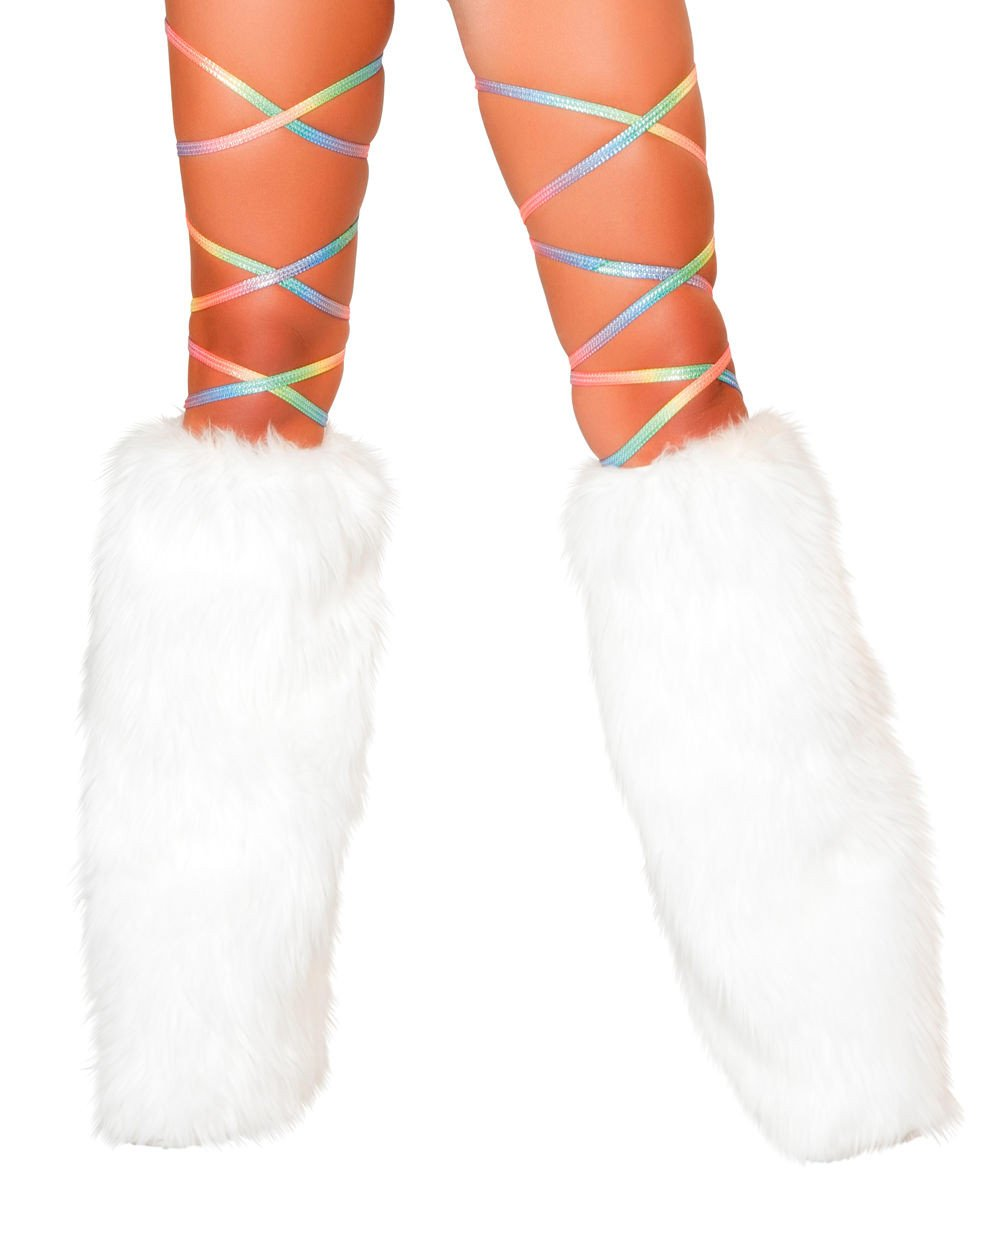 Two leg wraps shown; sold separately.